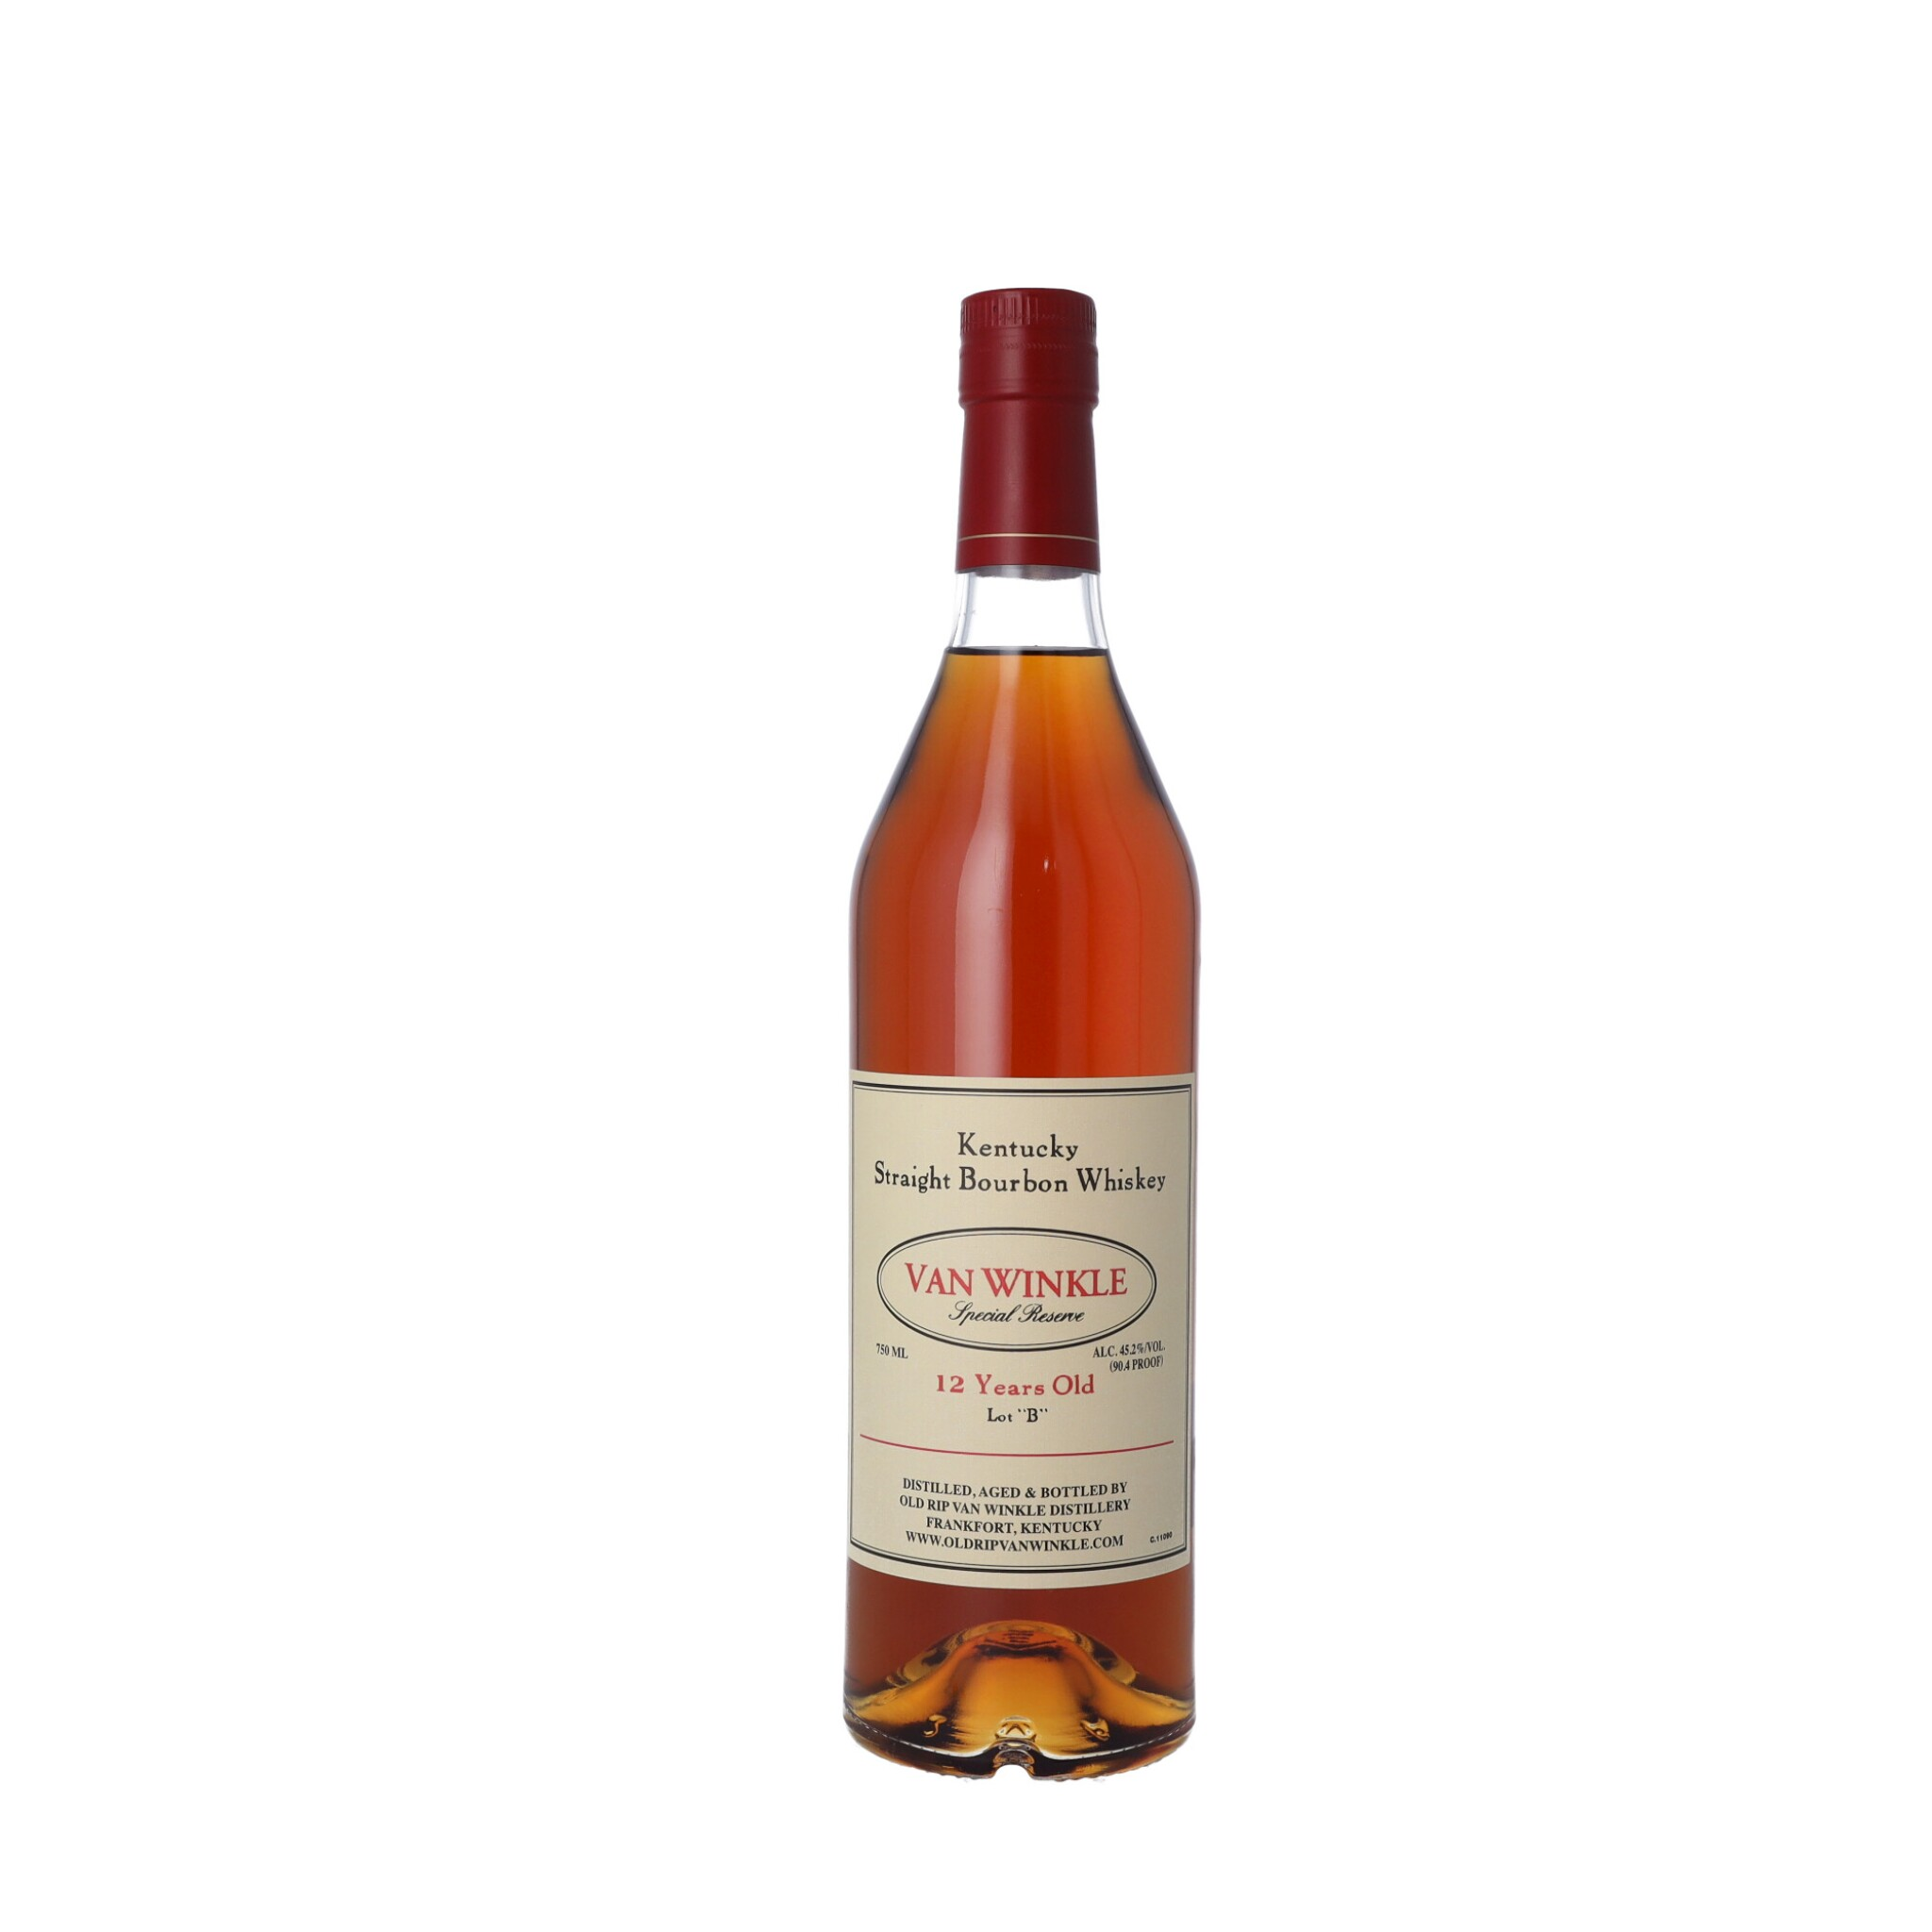 """View full screen - View 1 of Lot 170. Van Winkle 12 Year Old Special Reserve Lot """"B"""" 90.4 proof NV (1 BT75)."""